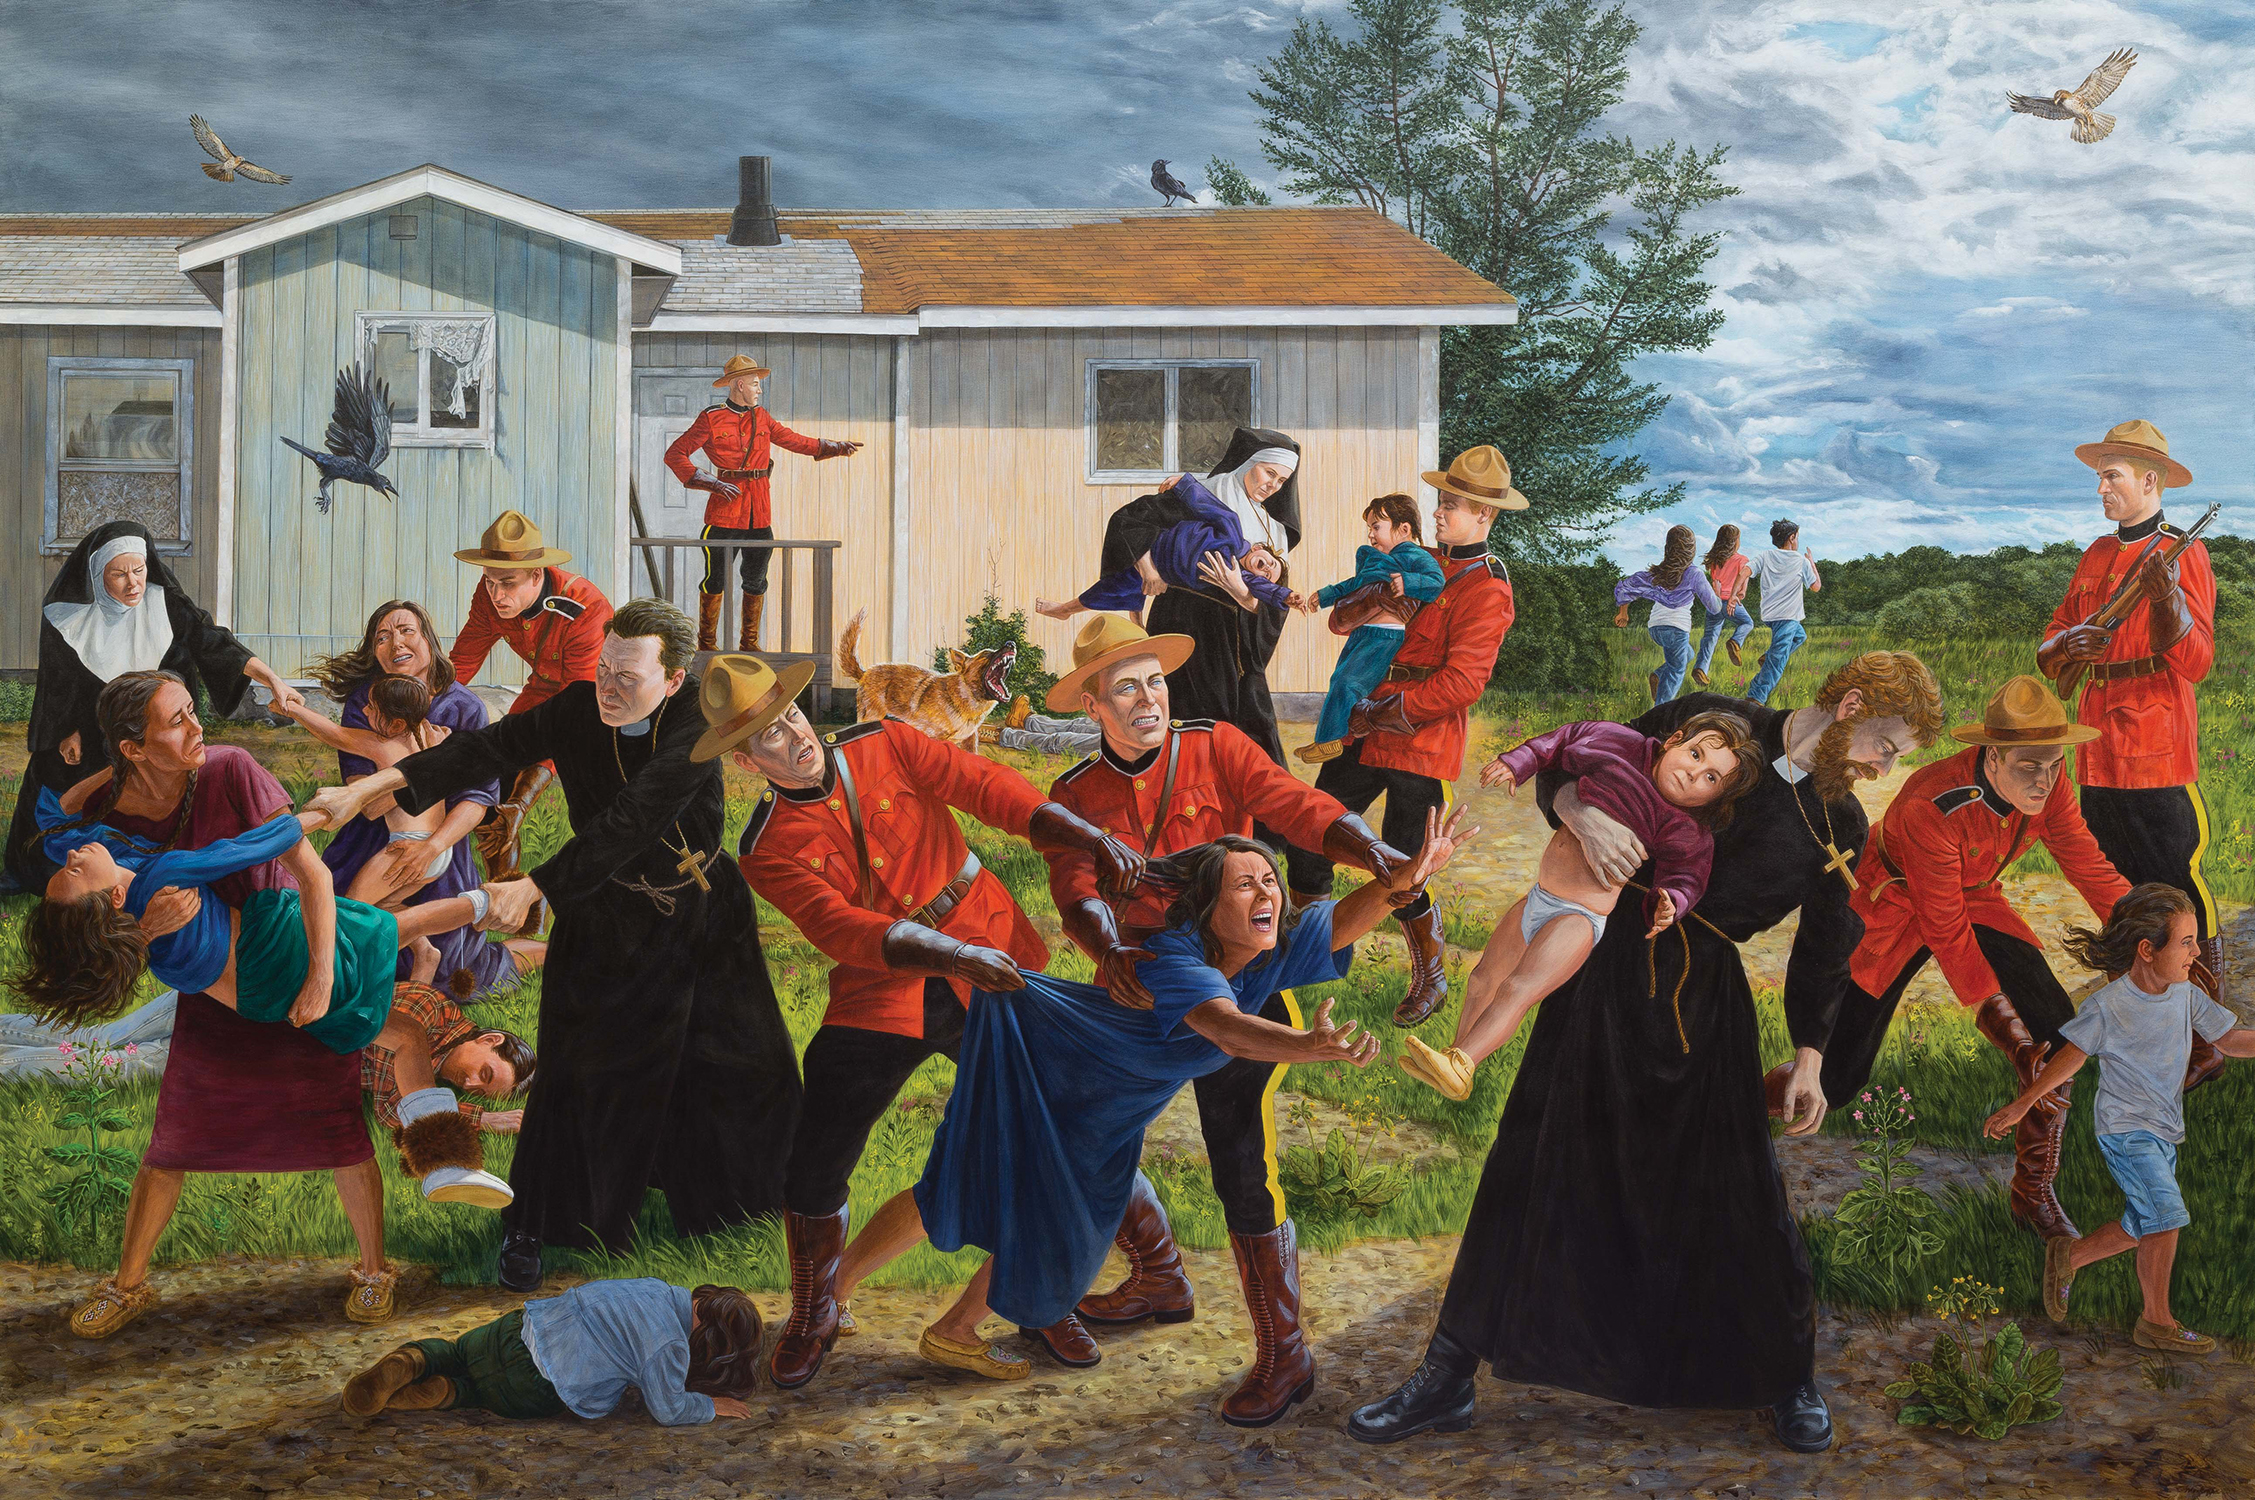 It is a violent (and accurate) portrayal of Indigenous children being taken by Christian missionaries to residential schools.